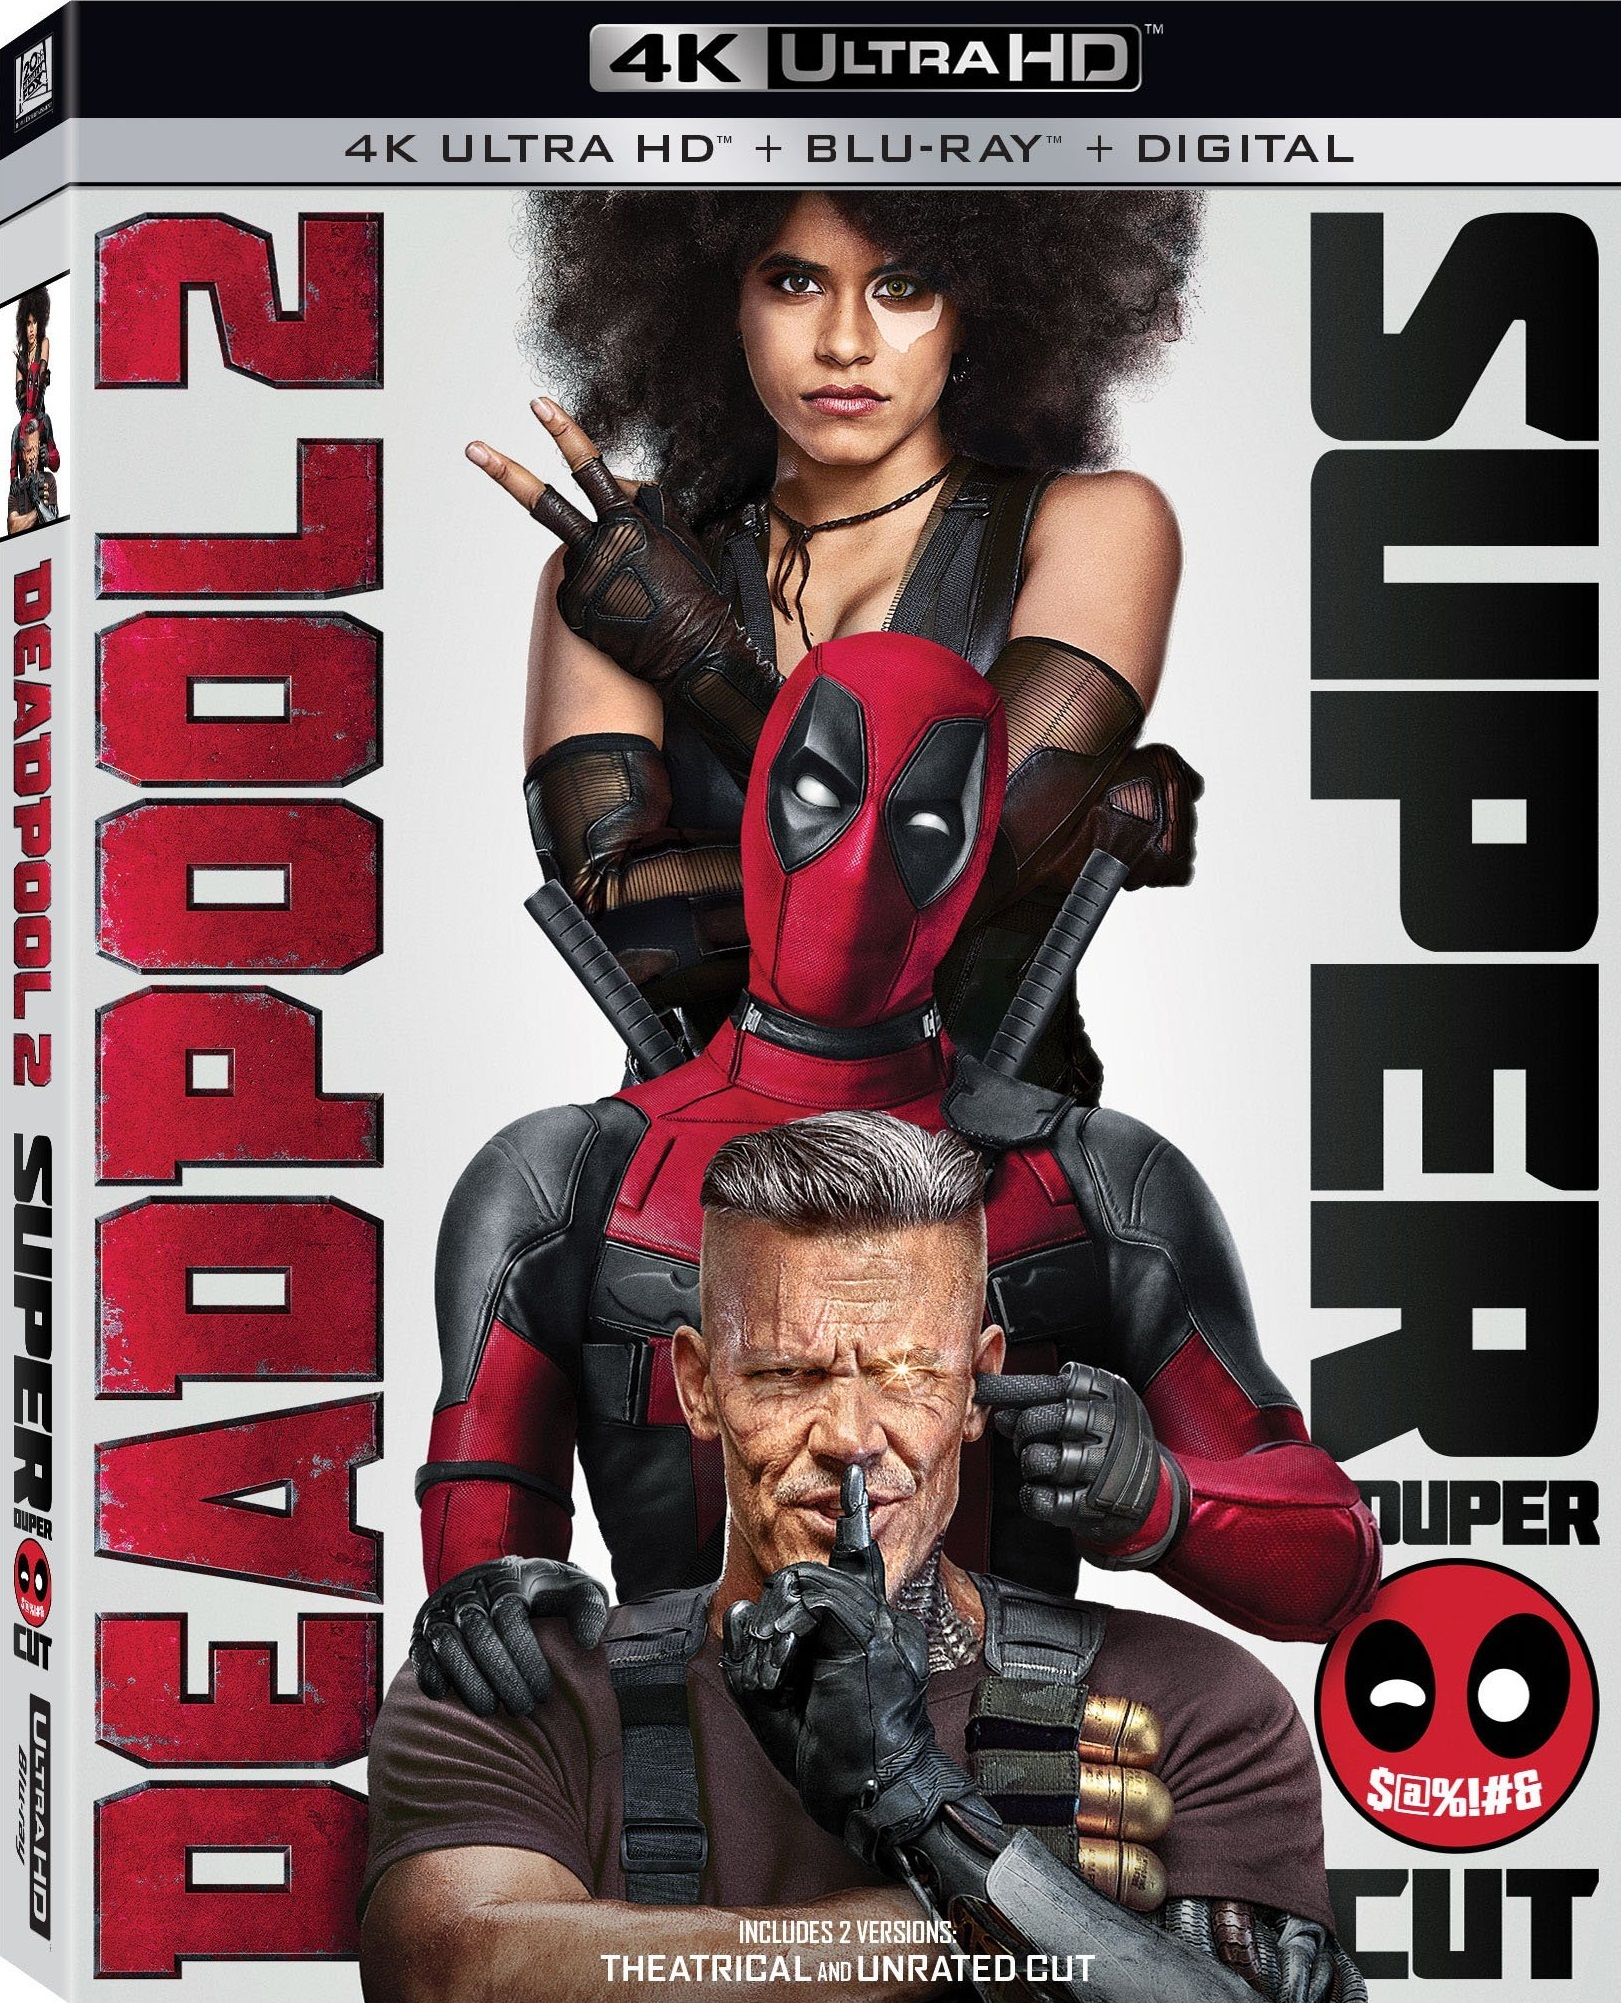 Deadpool 2 (2018) poster image